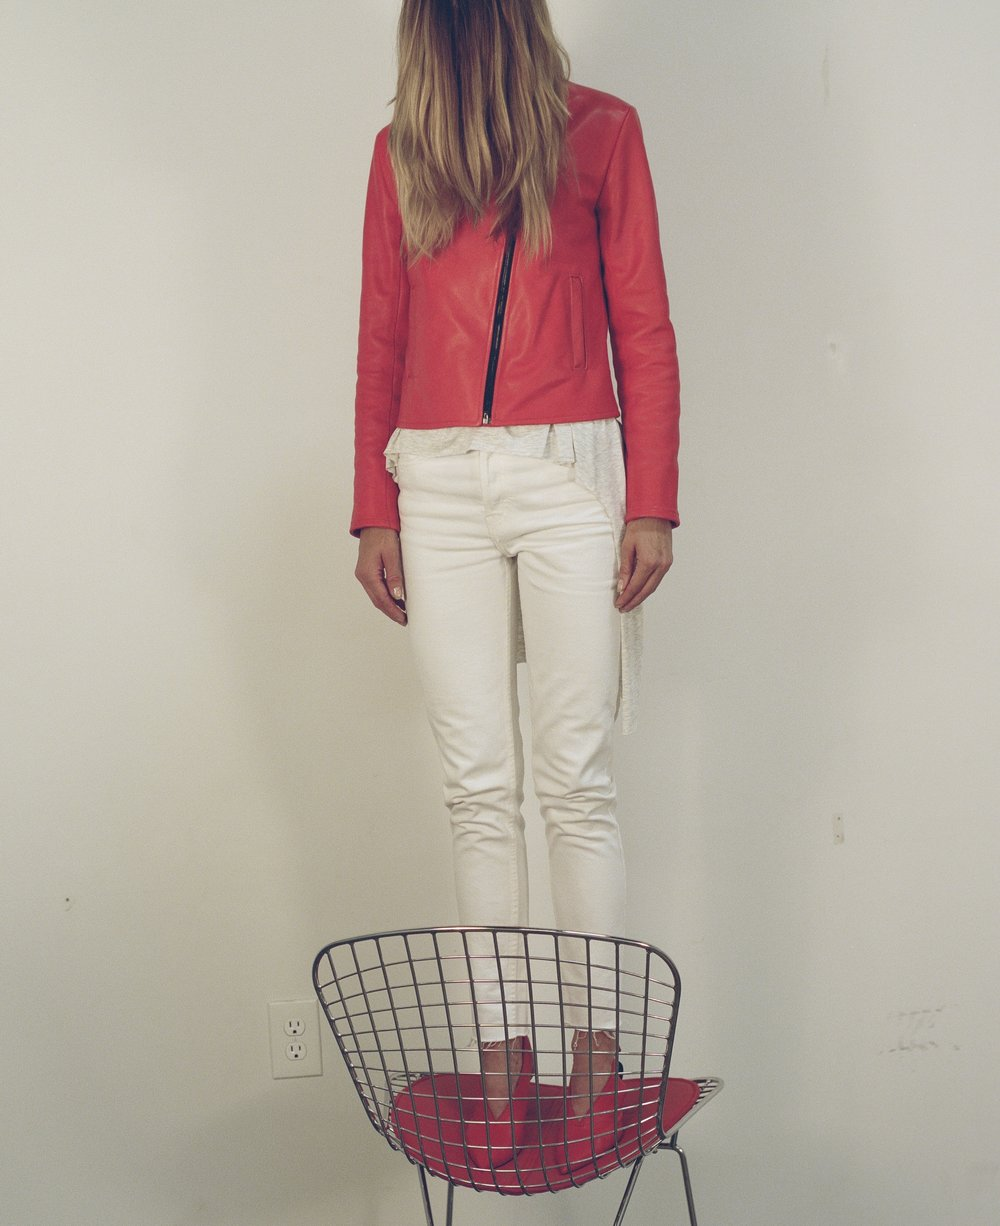 Melissa Fleis - Atomic Red Leather Drift Top Standing.jpg